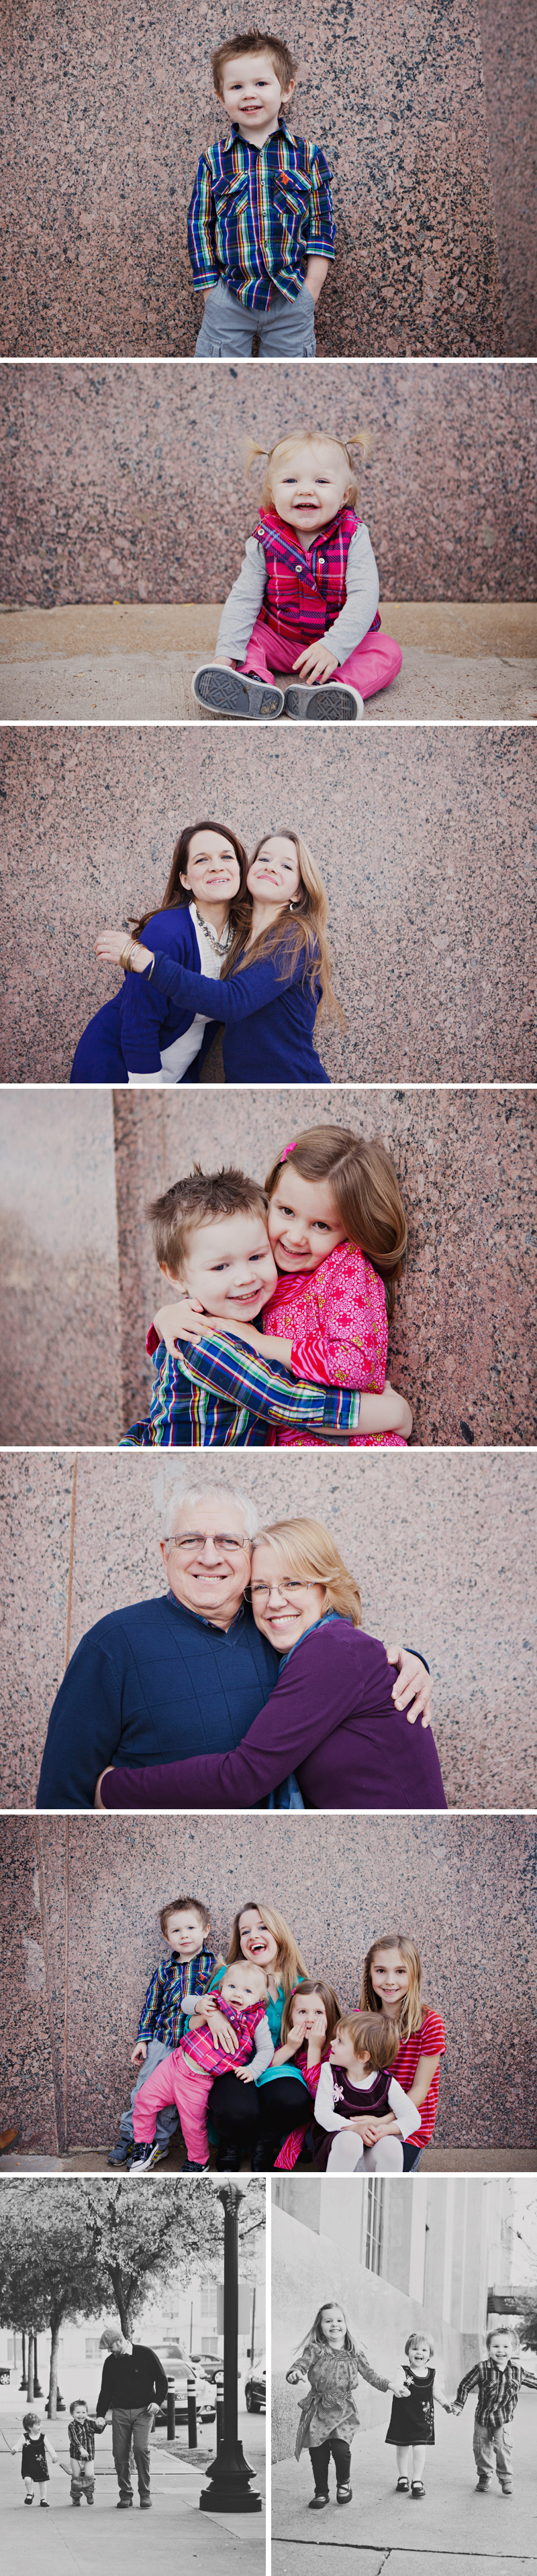 Dallas-Family-Photographerc076